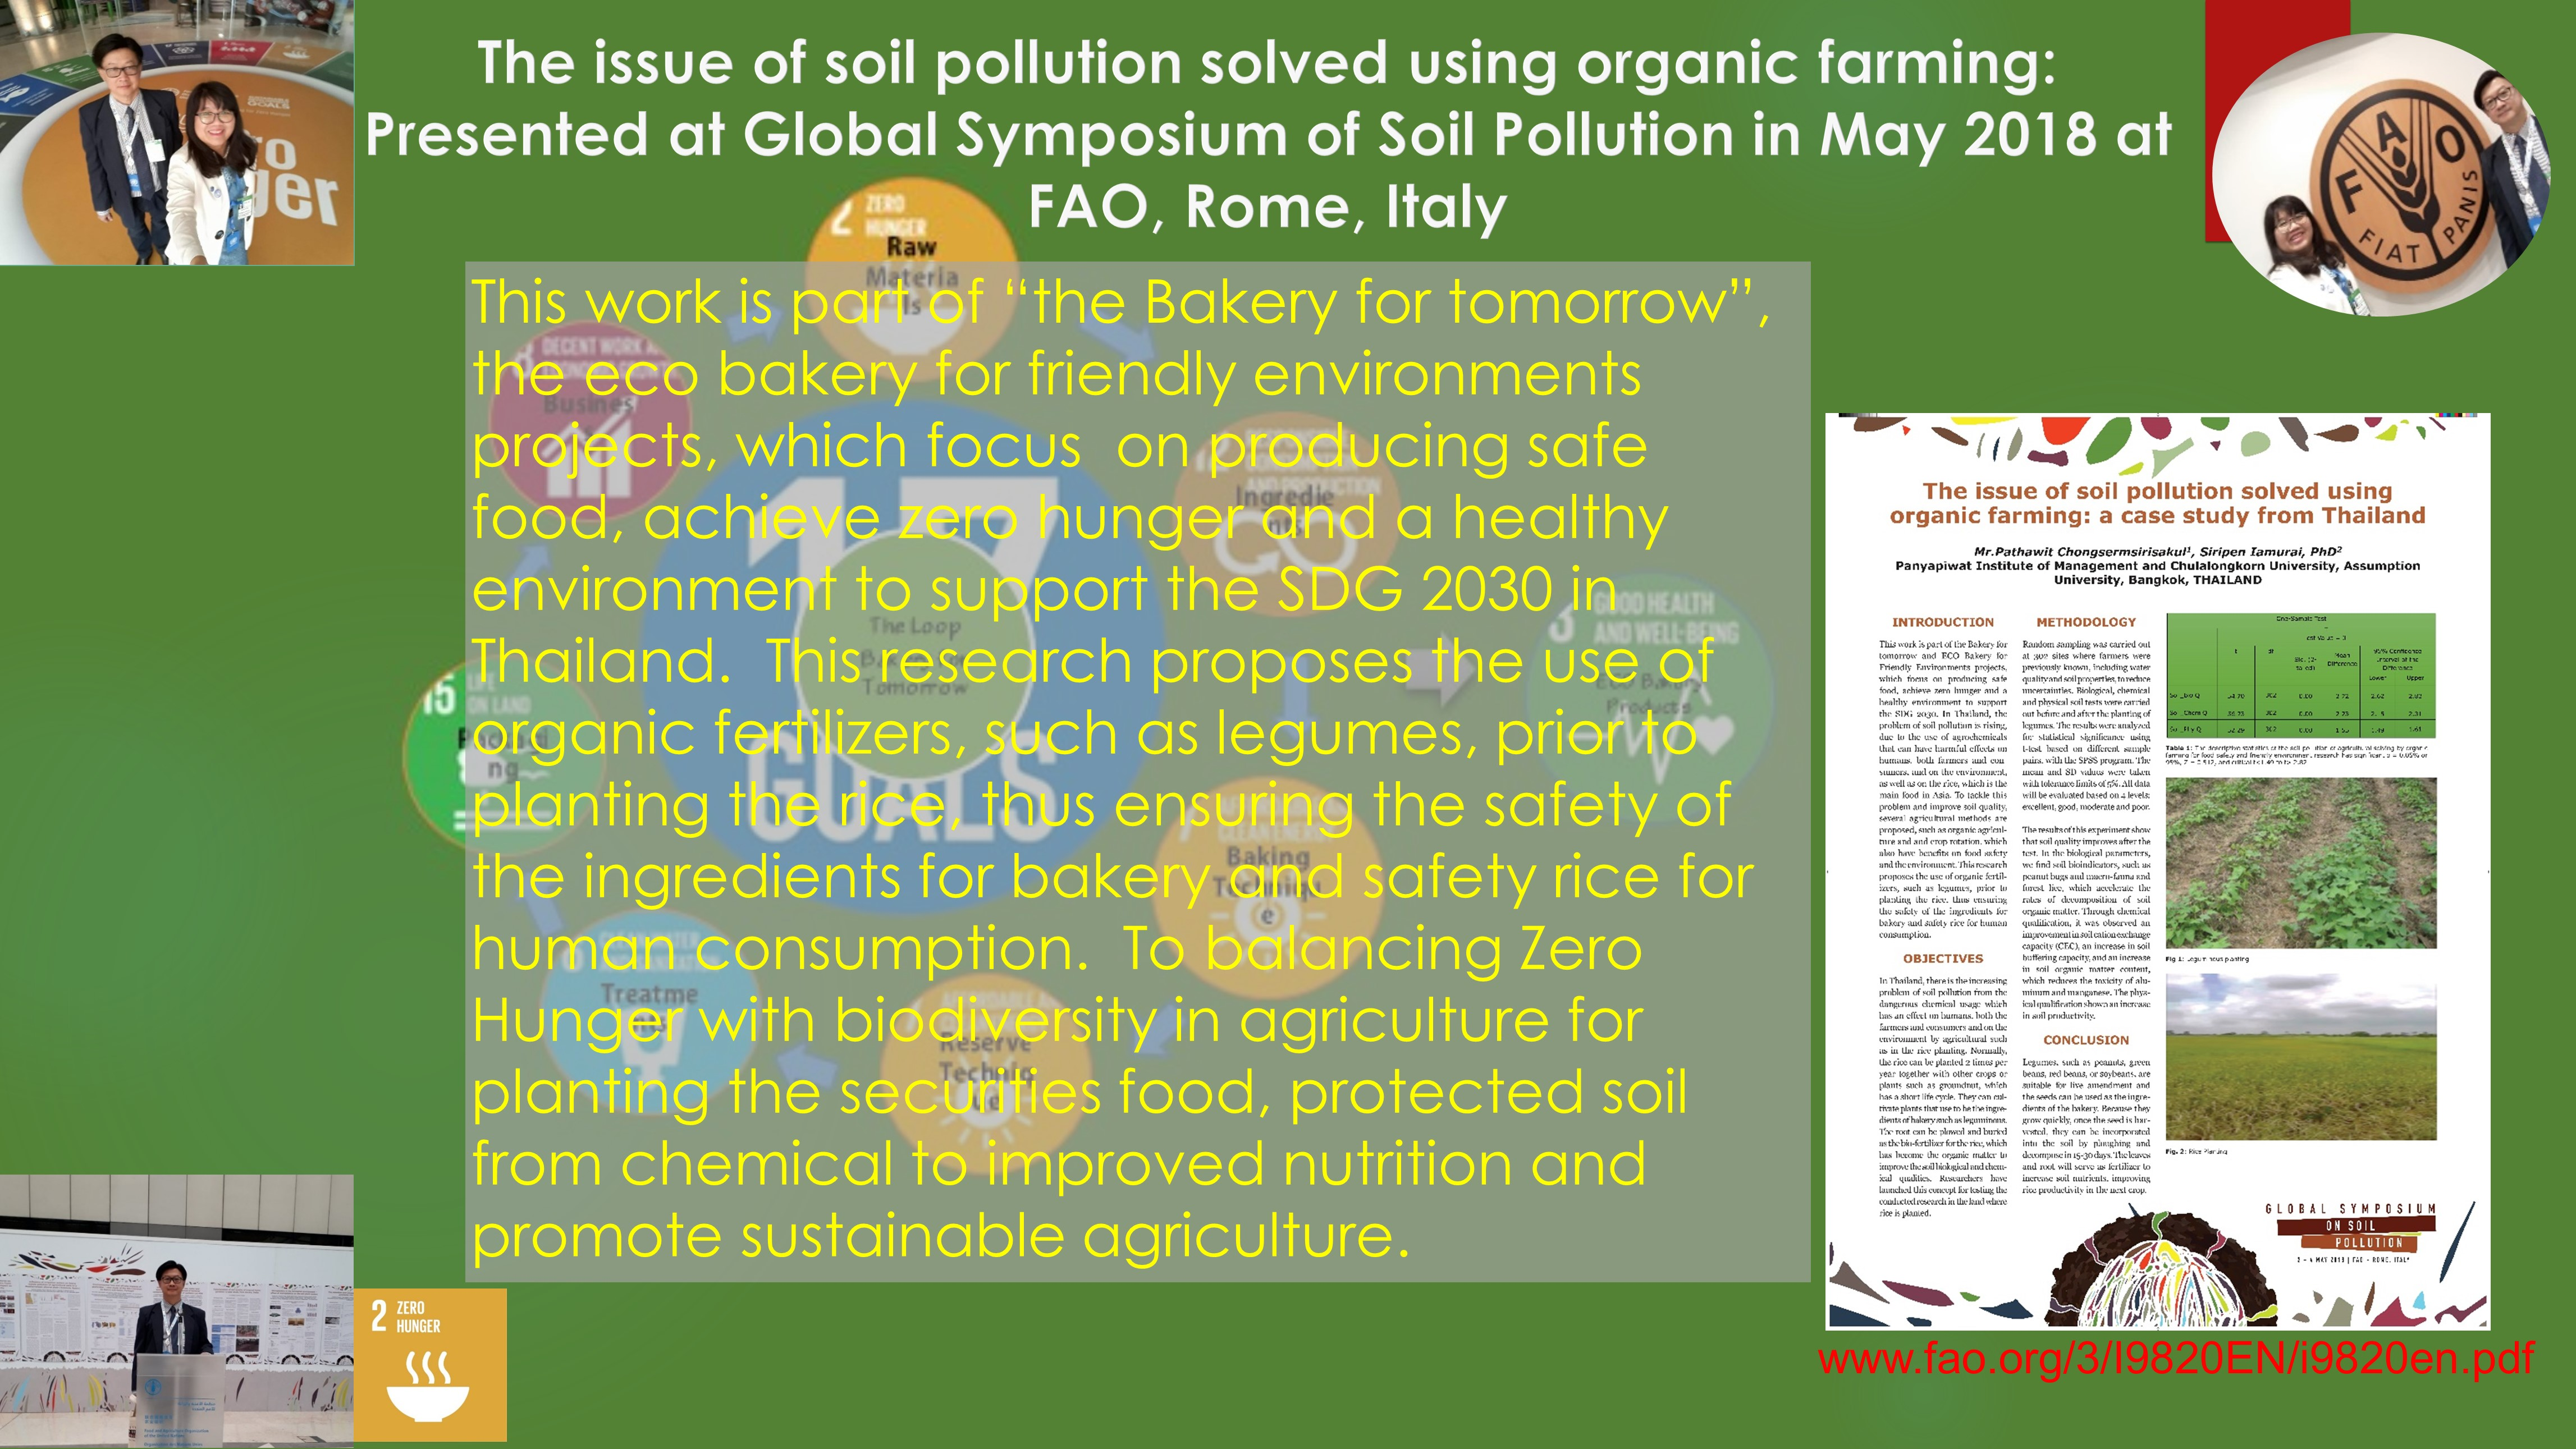 The Issue of Soil Pollution Solved Using Organic Farming